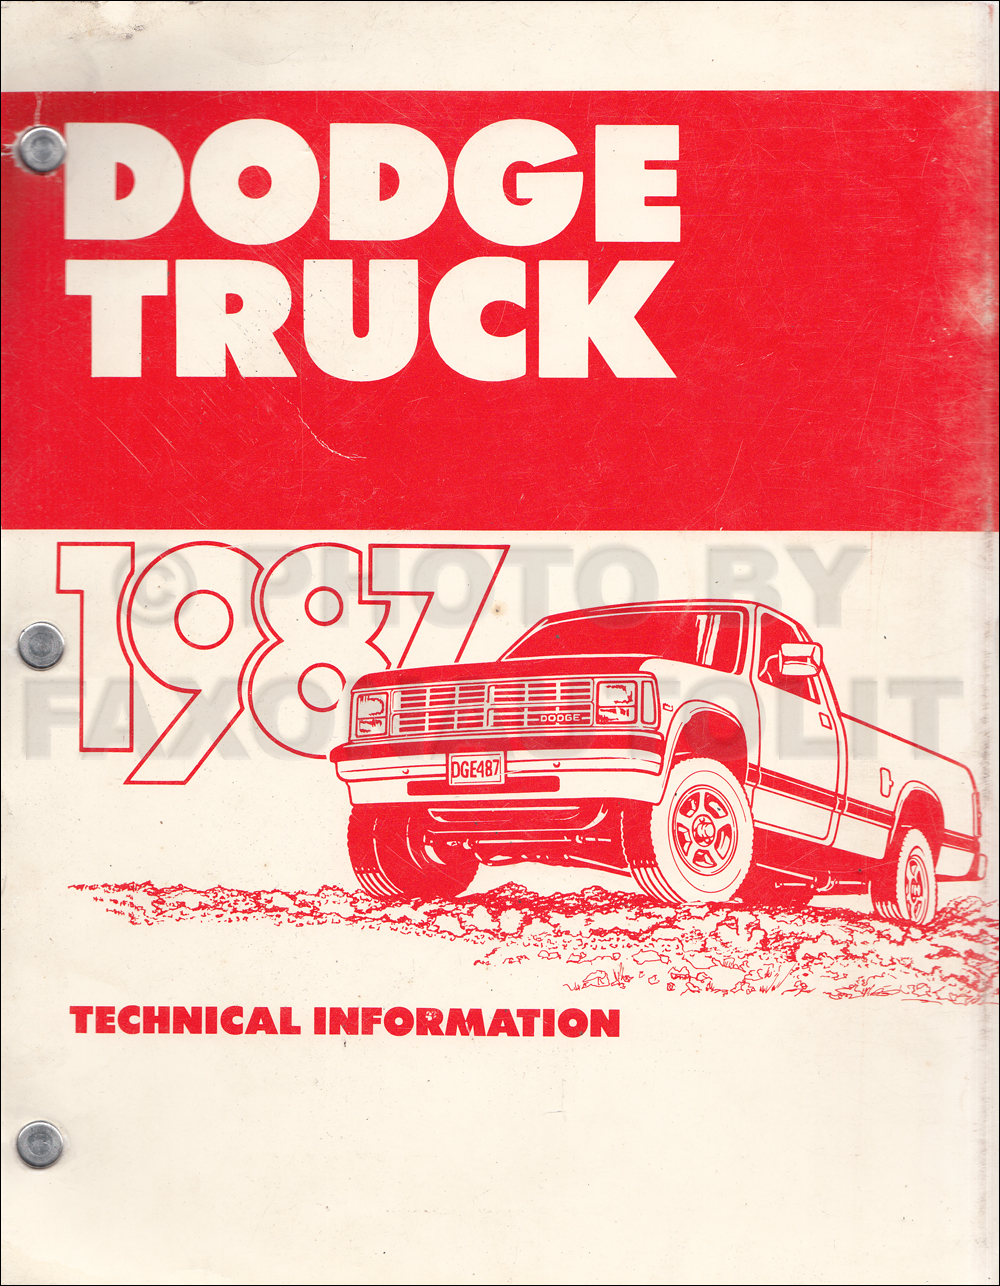 1987 Dodge Truck Technical Press Information Original